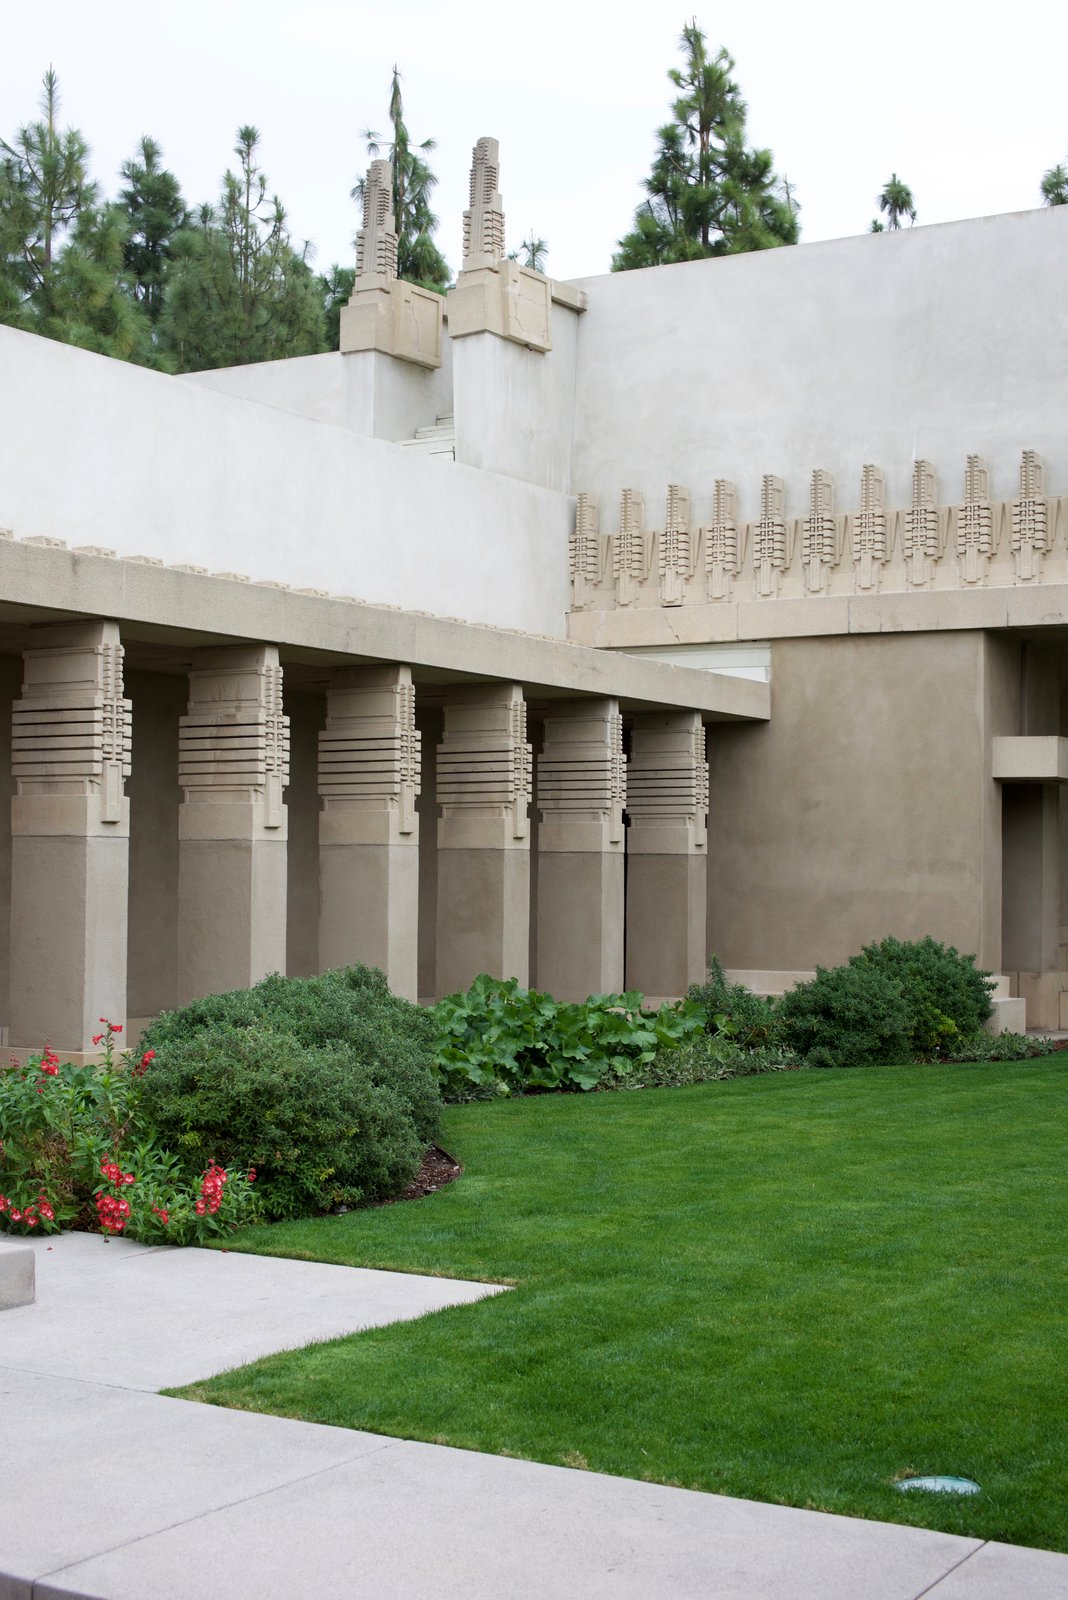 The Hollyhock House is open to the public through self-guided tours or personal docent-led tours. They also open the lawn to community events including art workshops, cultural get-togethers, and outdoor movie nights.  Photo 14 of 14 in Iconic Perspectives: Frank Lloyd Wright's Hollyhock House